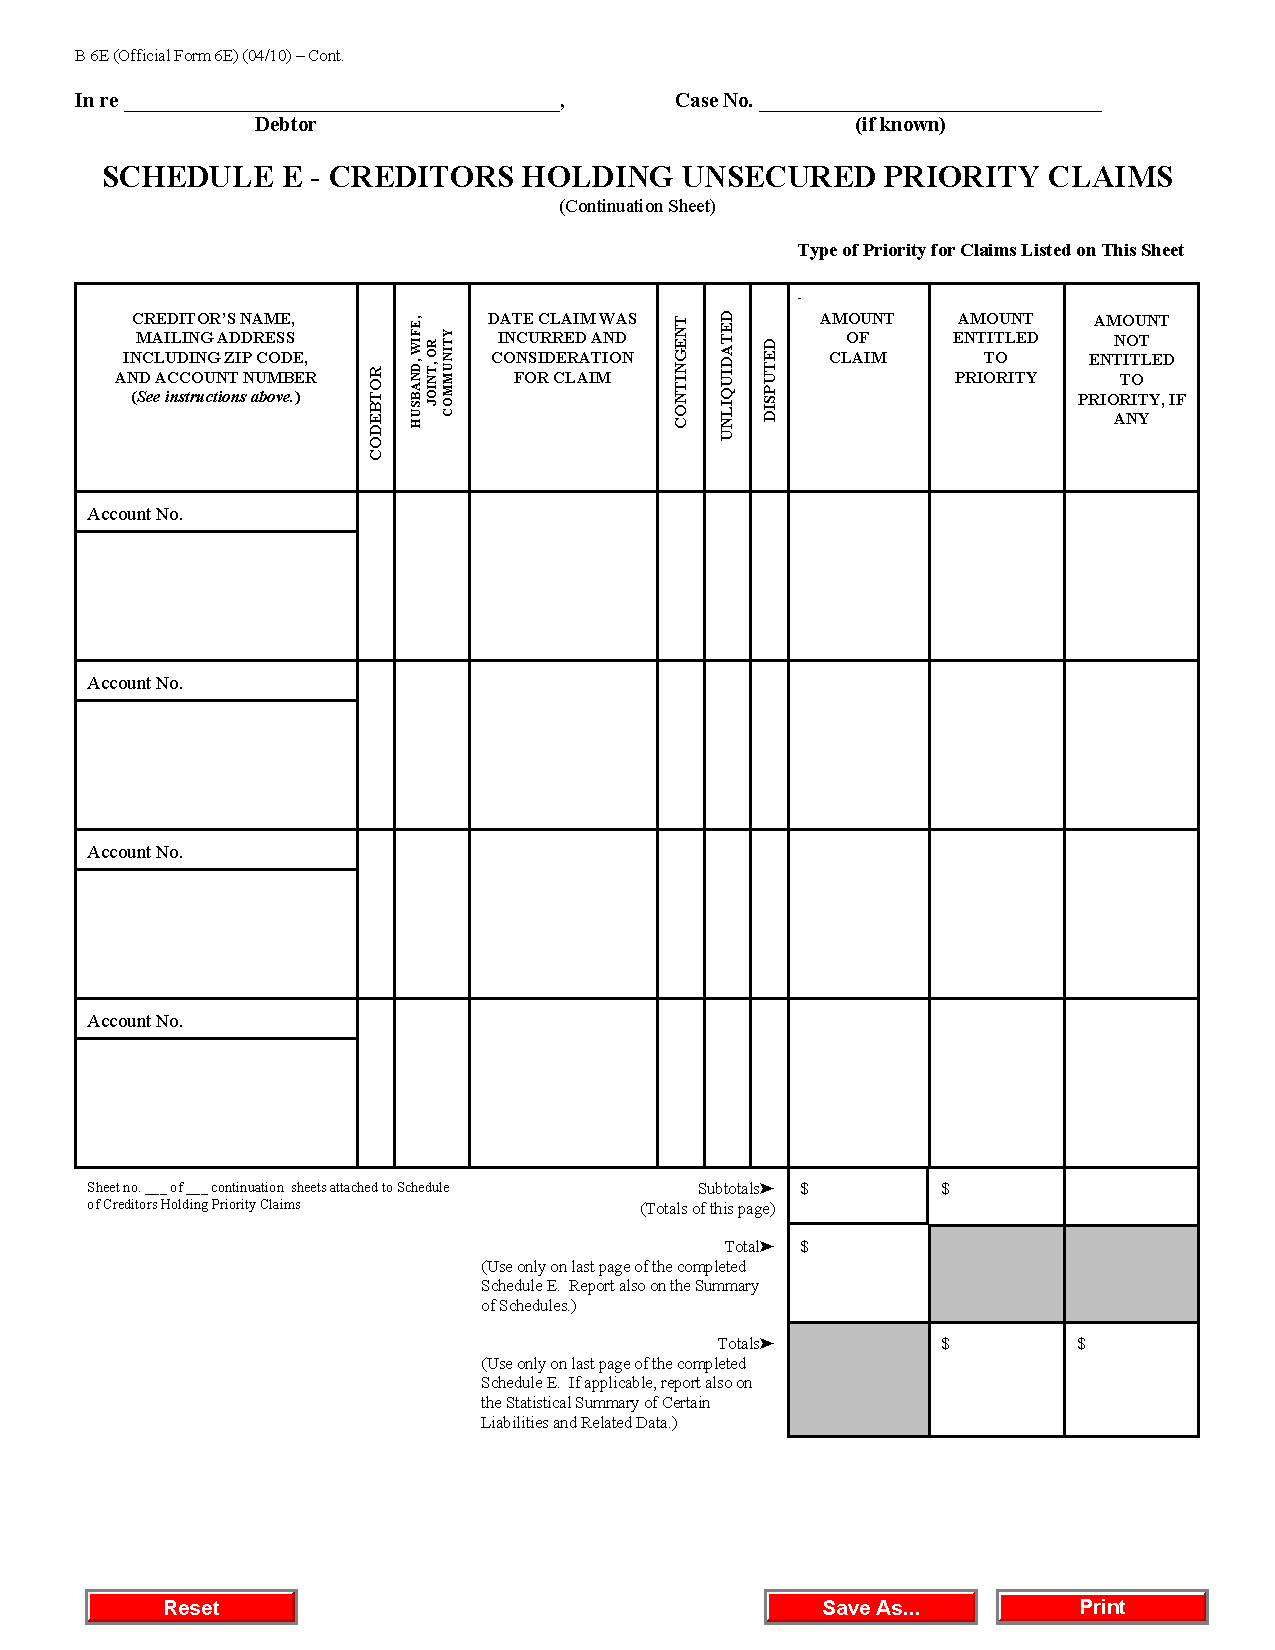 Form B 6E Schedule E Creditors Holding Unsecured Priority Claims – Schedule E Worksheet